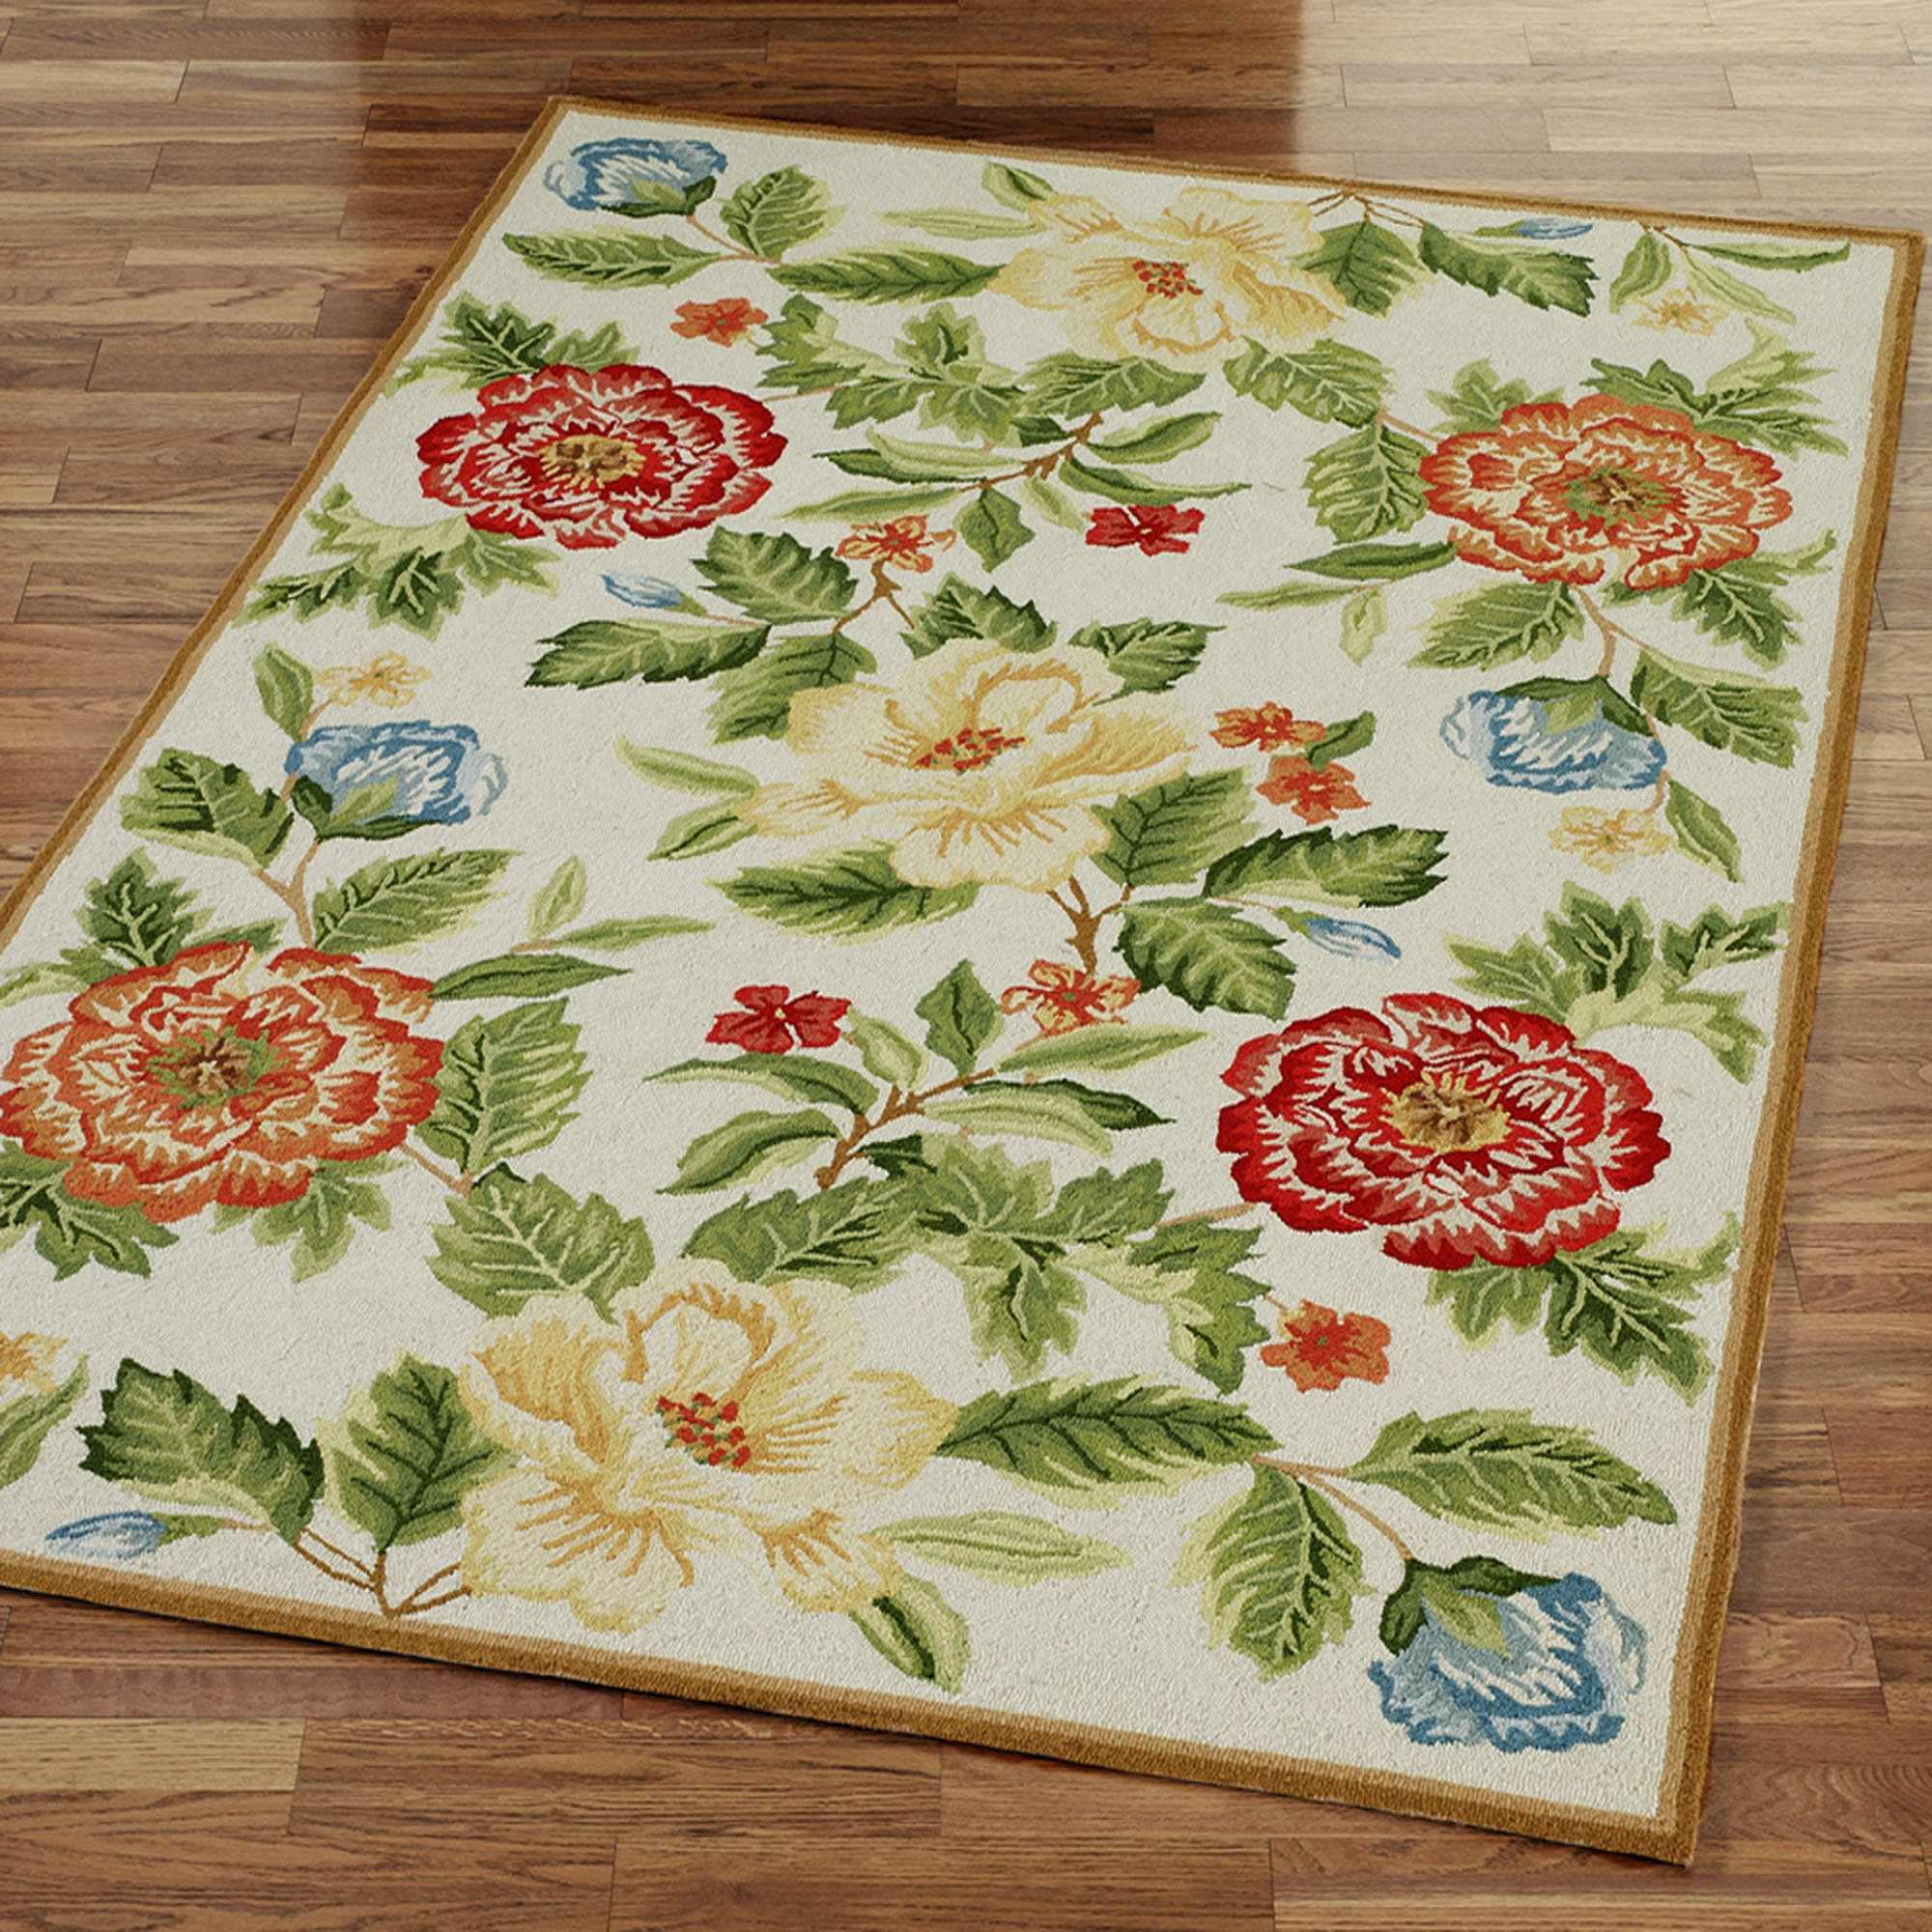 rug sets beige area rug 8x10 area rugs 8x10 - Rug Sets